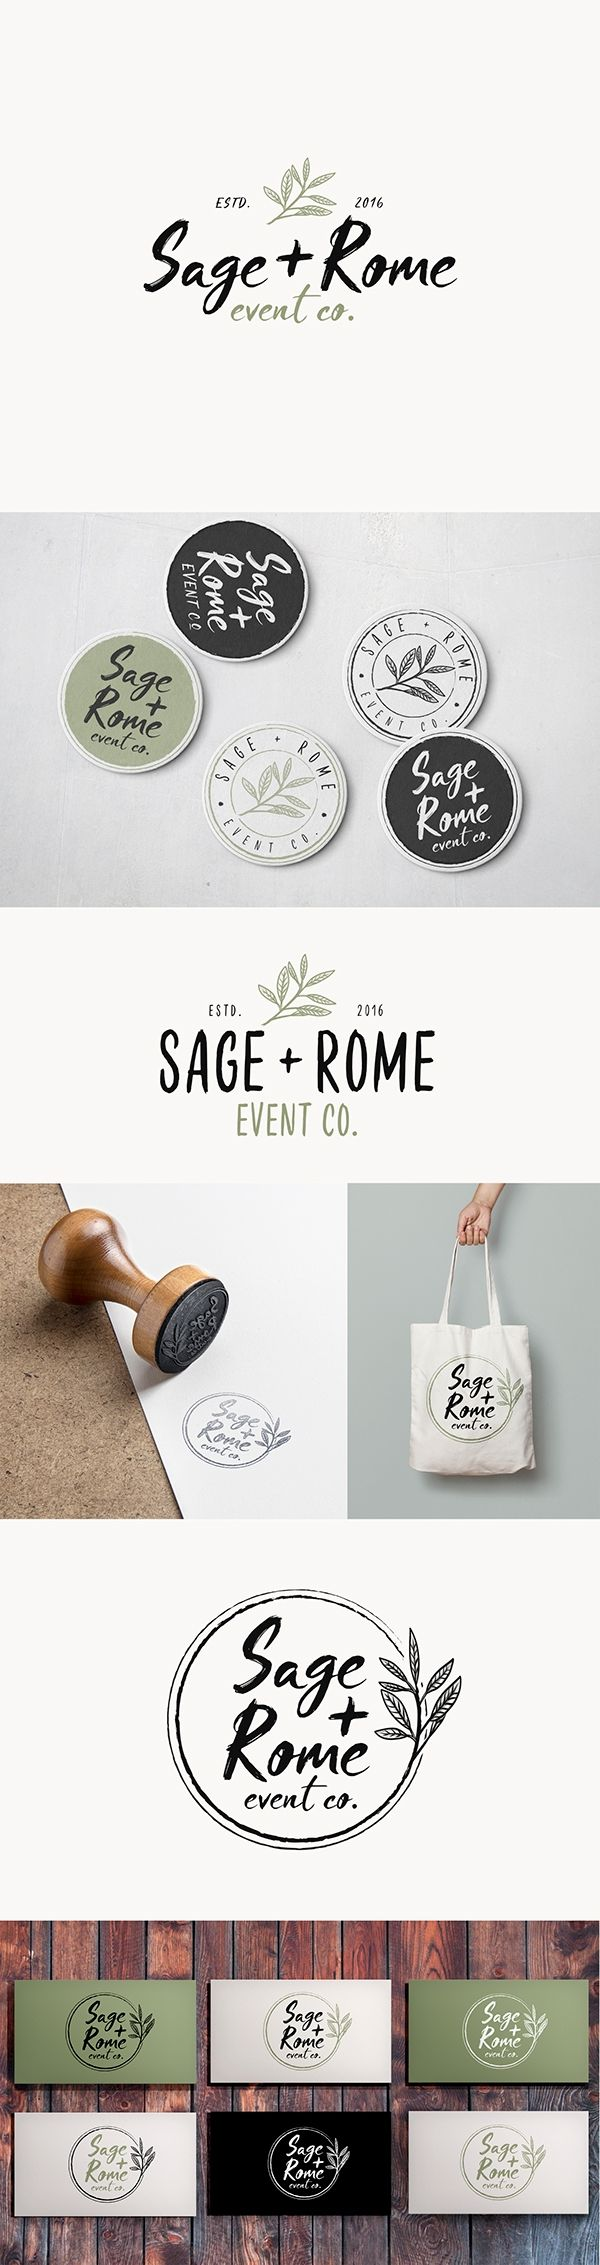 Rustic logo for Sage + Rome on Behance